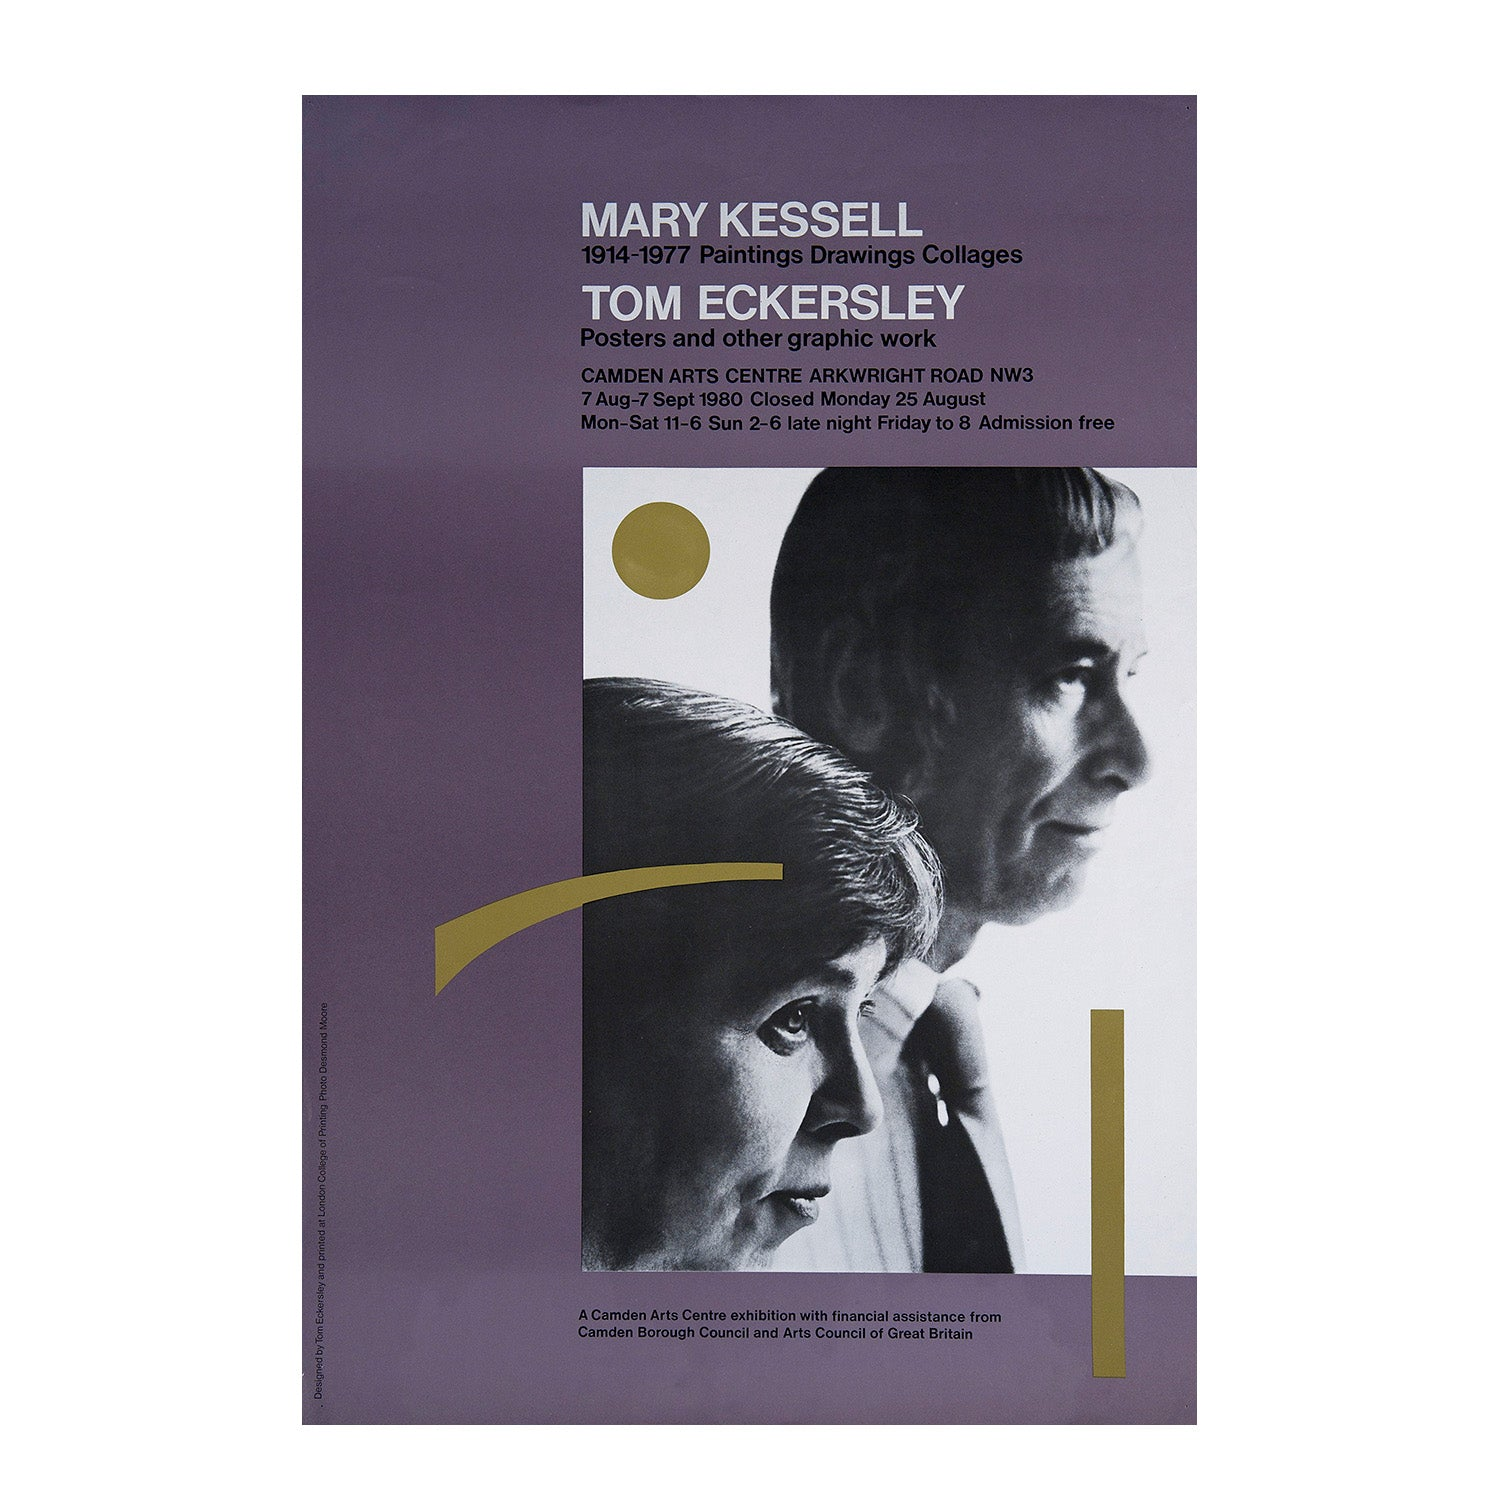 Mary Kessell 1914-1977 Paintings Drawings Collages. Tom Eckersley Posters and other graphic works